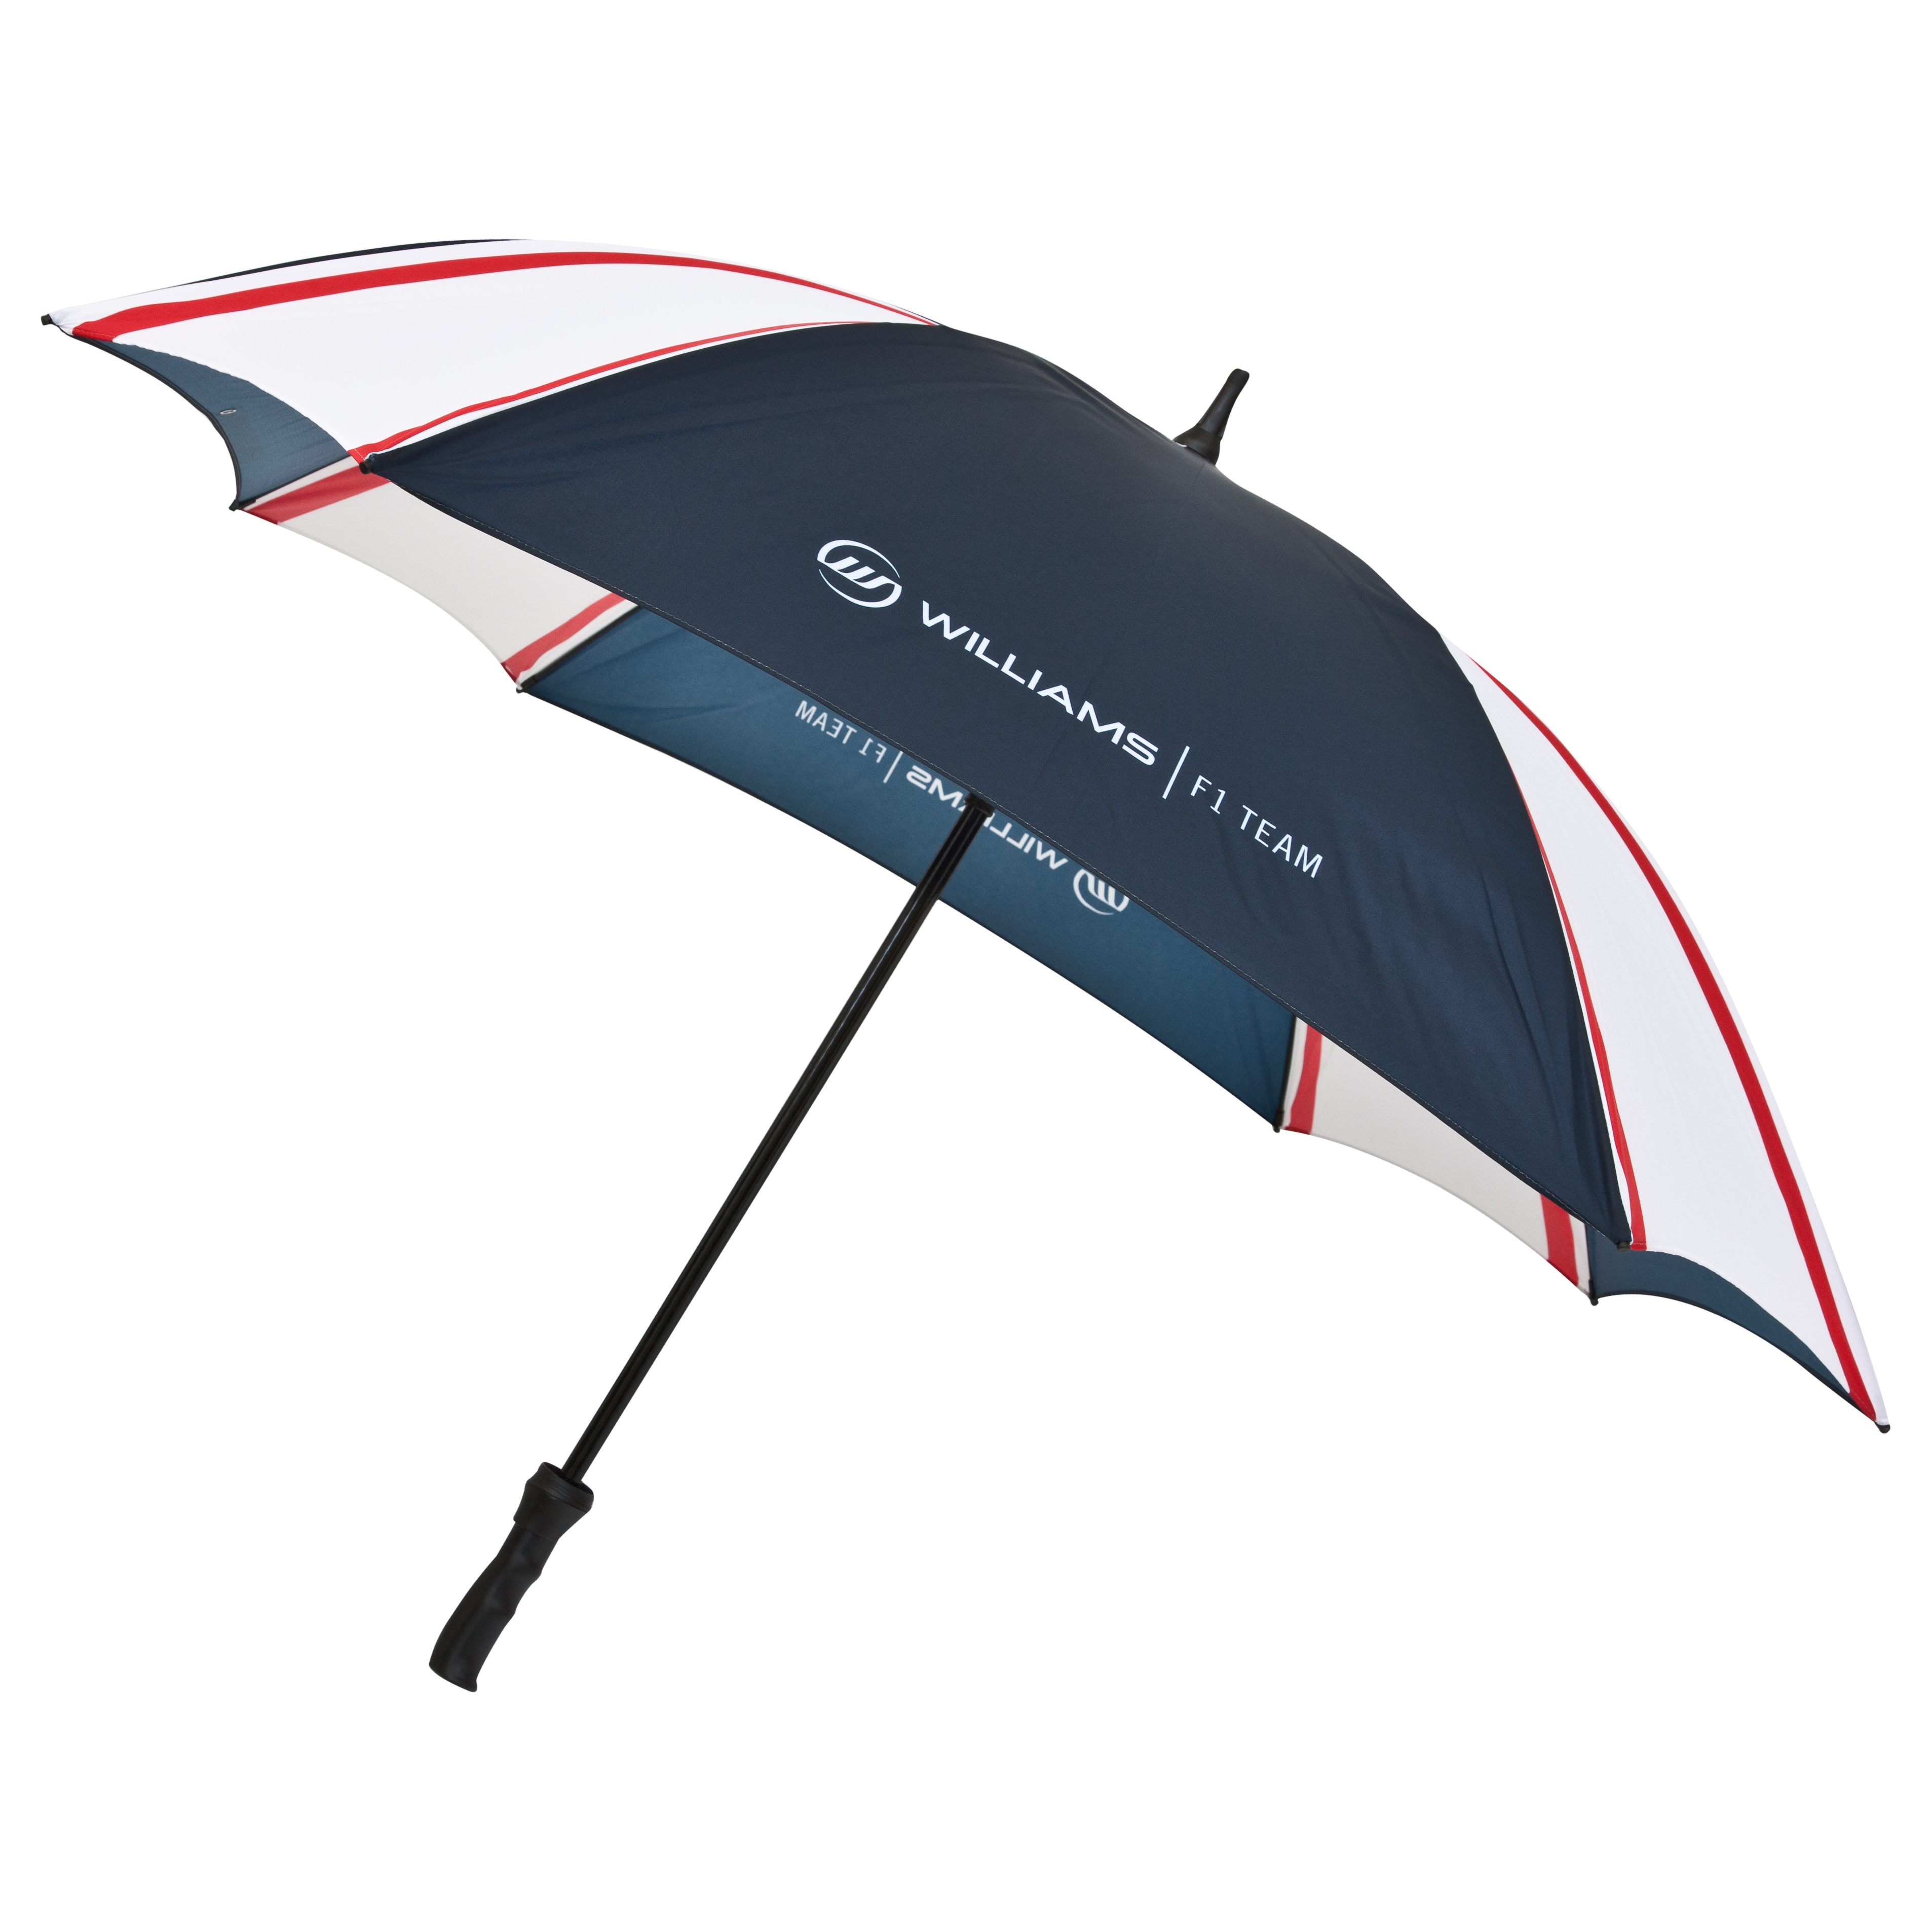 WILLIAMS F1 Team 2013 Golf Umbrella